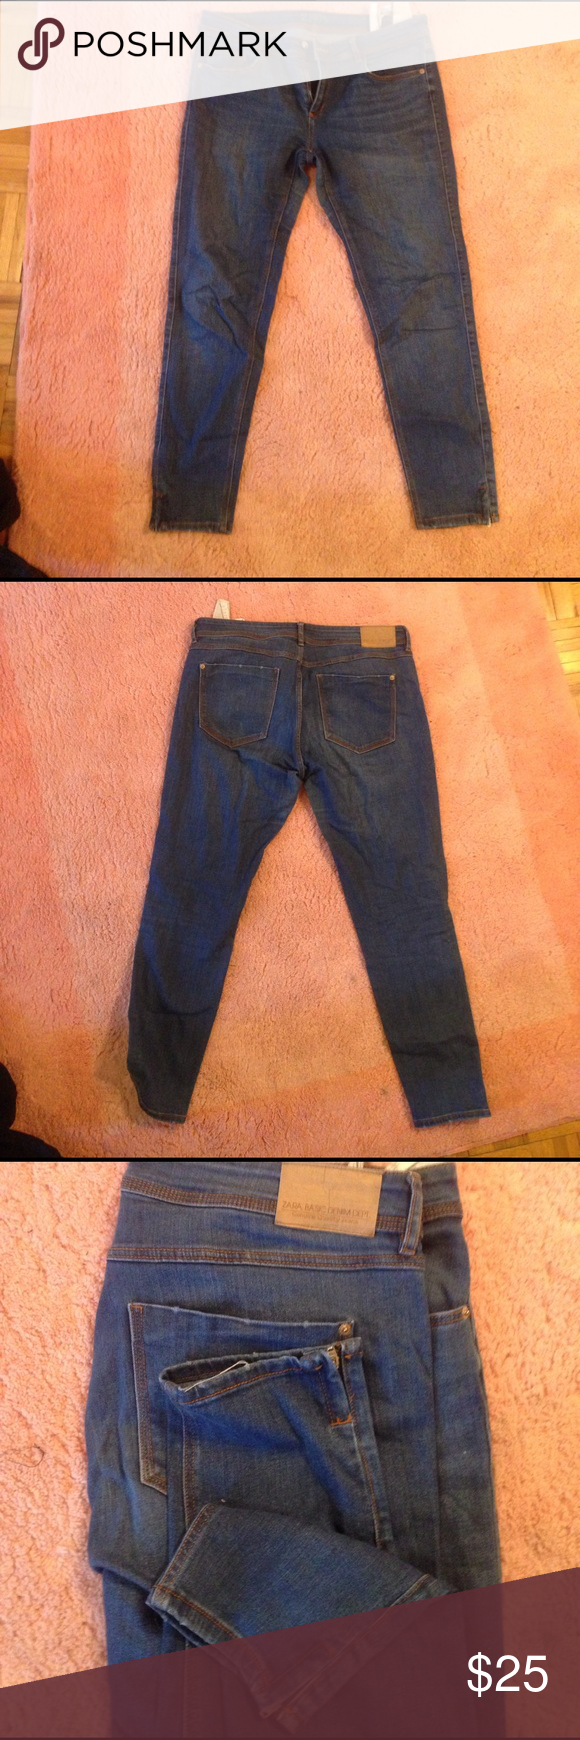 Zara Basic Z1975 Dark Wash jeans Zara Basic Z1975 Dark Wash cropped jeans. They have a tiny decorative zipper in the leg and are very confortable and stretchy ! Zara Jeans